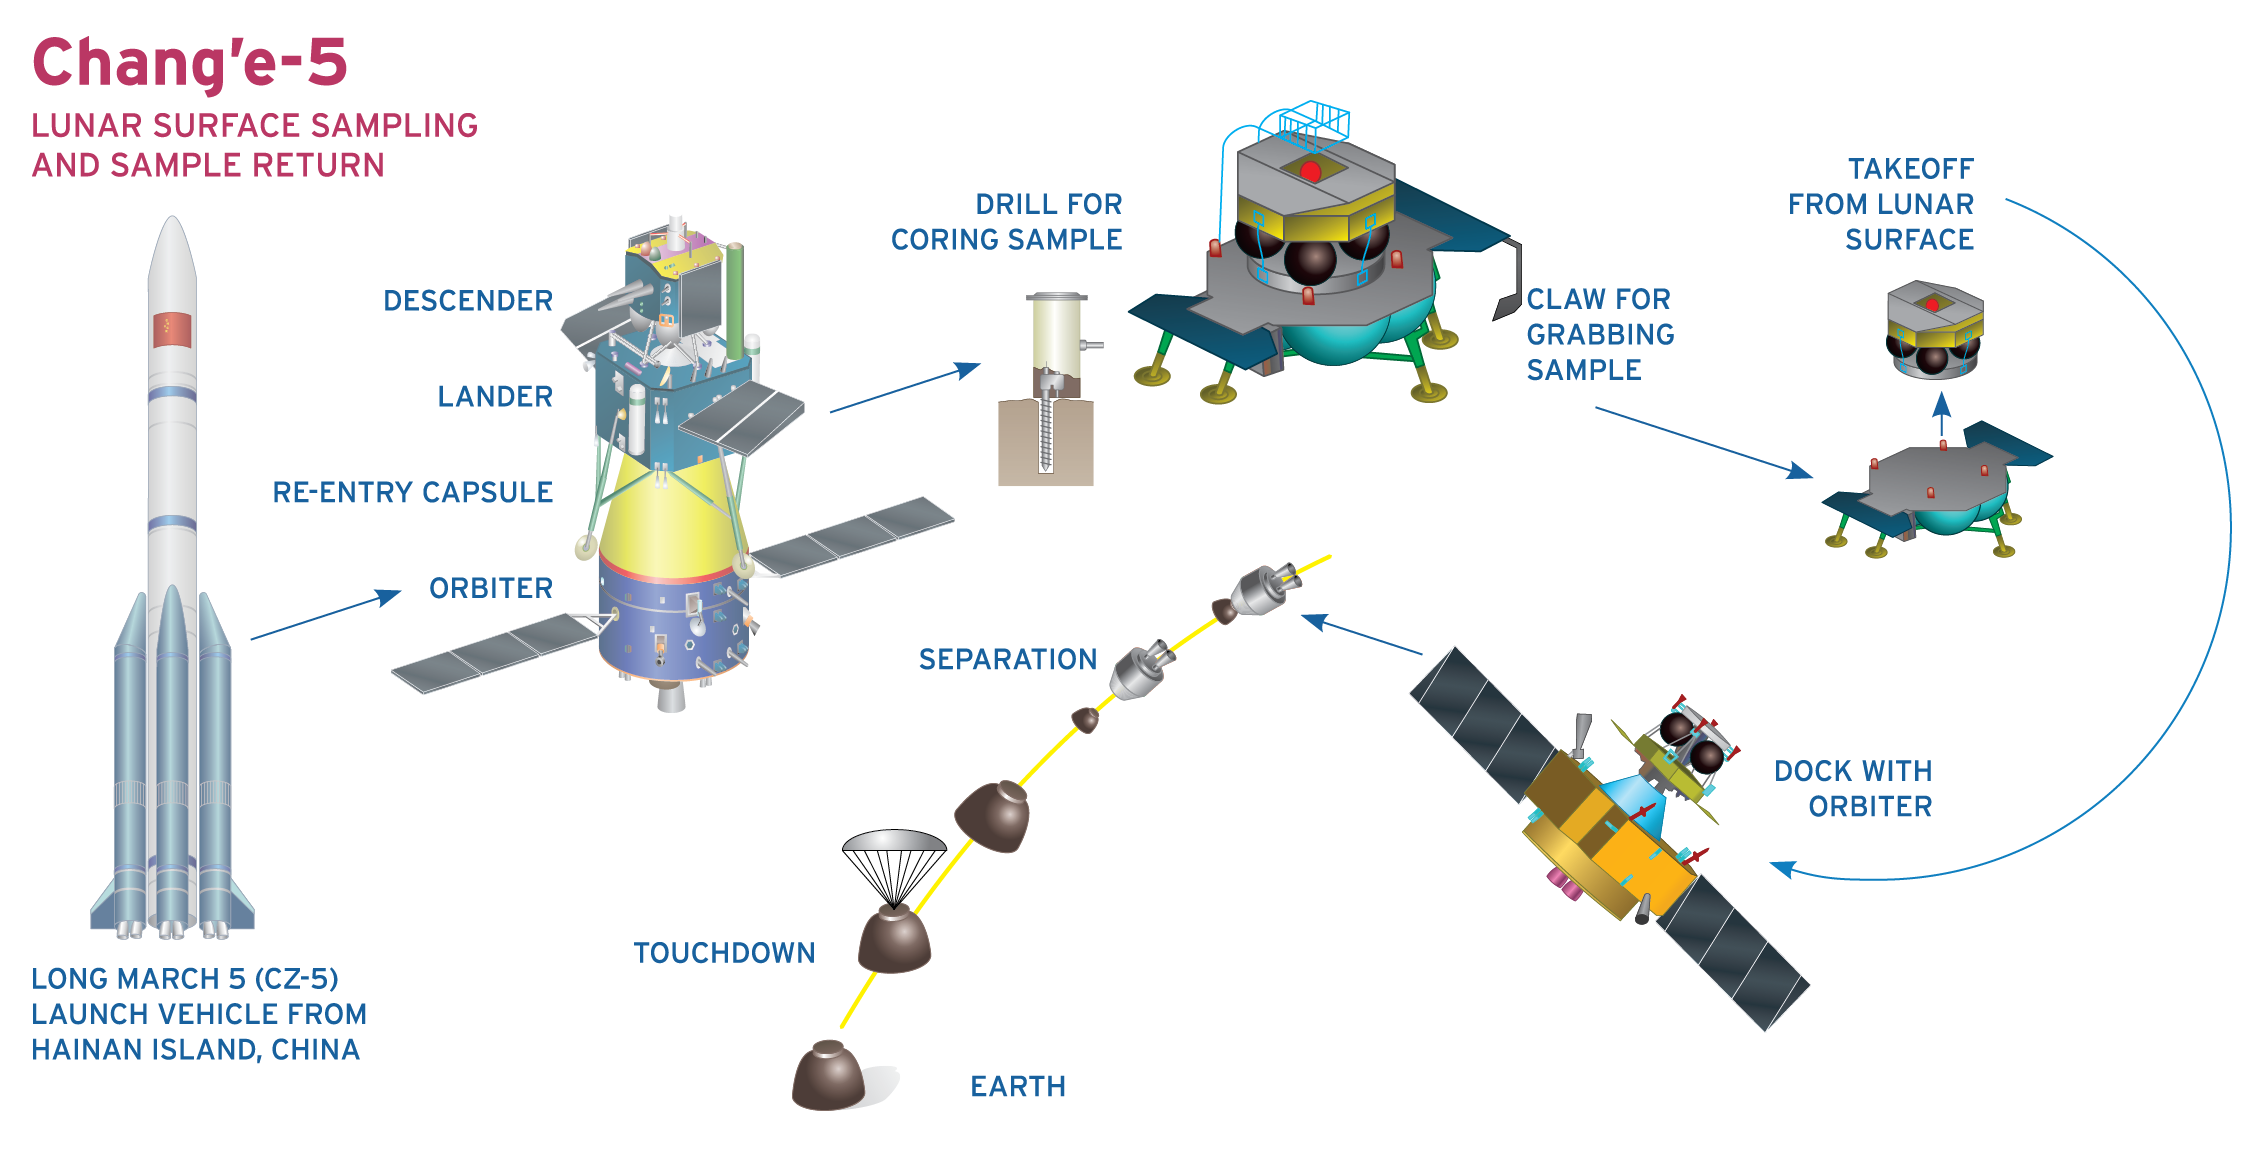 Chang'e-5 Lunar Sample Return Mission Plan. Source: CNSA.